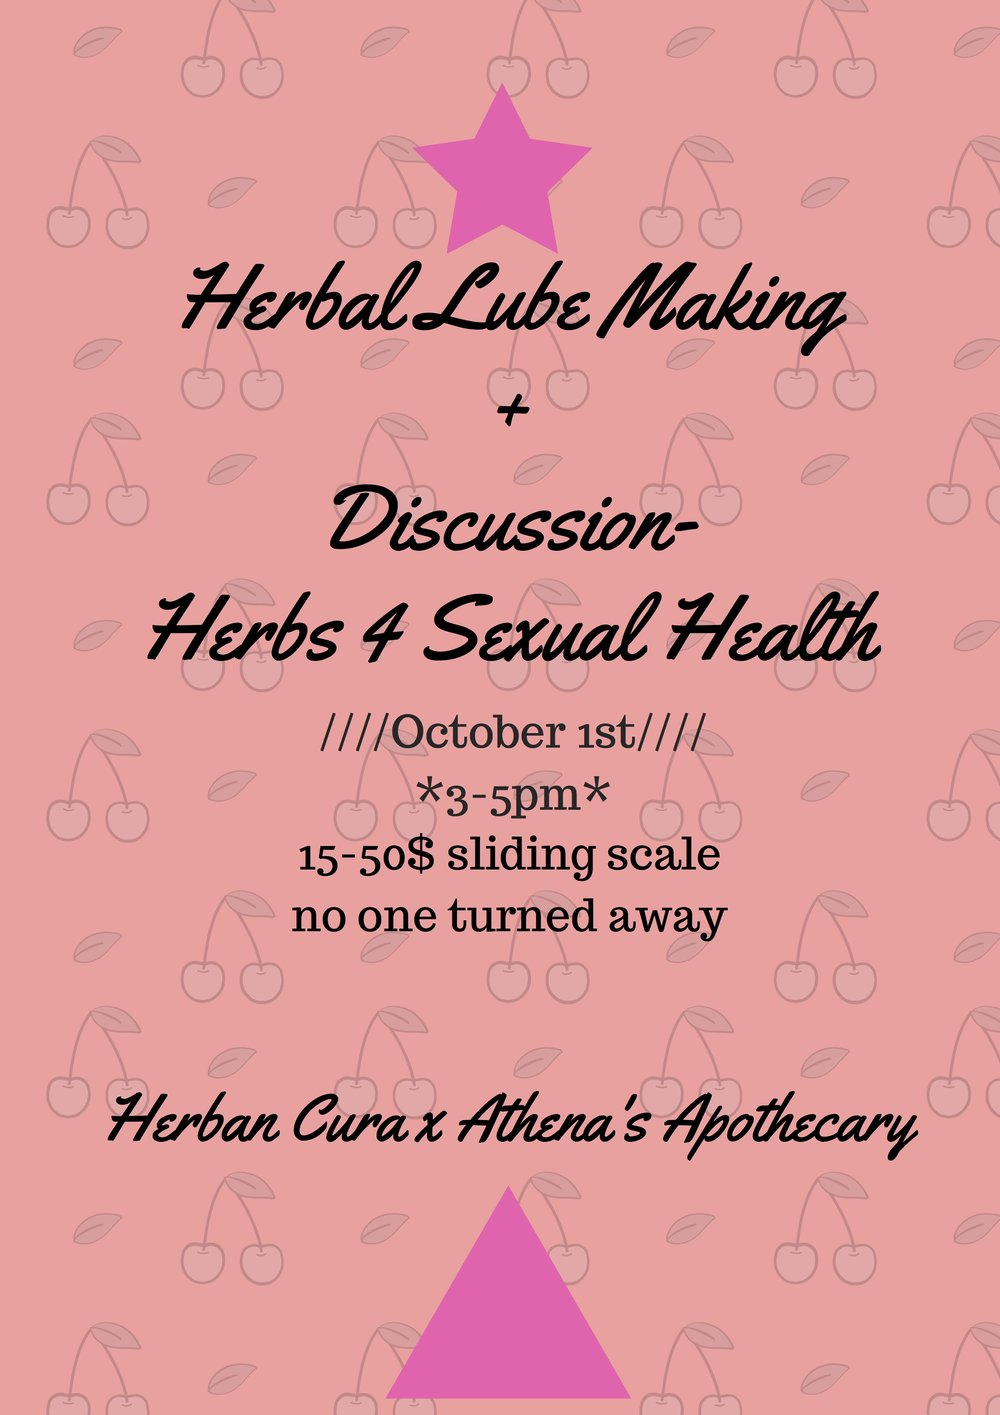 Herbal Lube Making